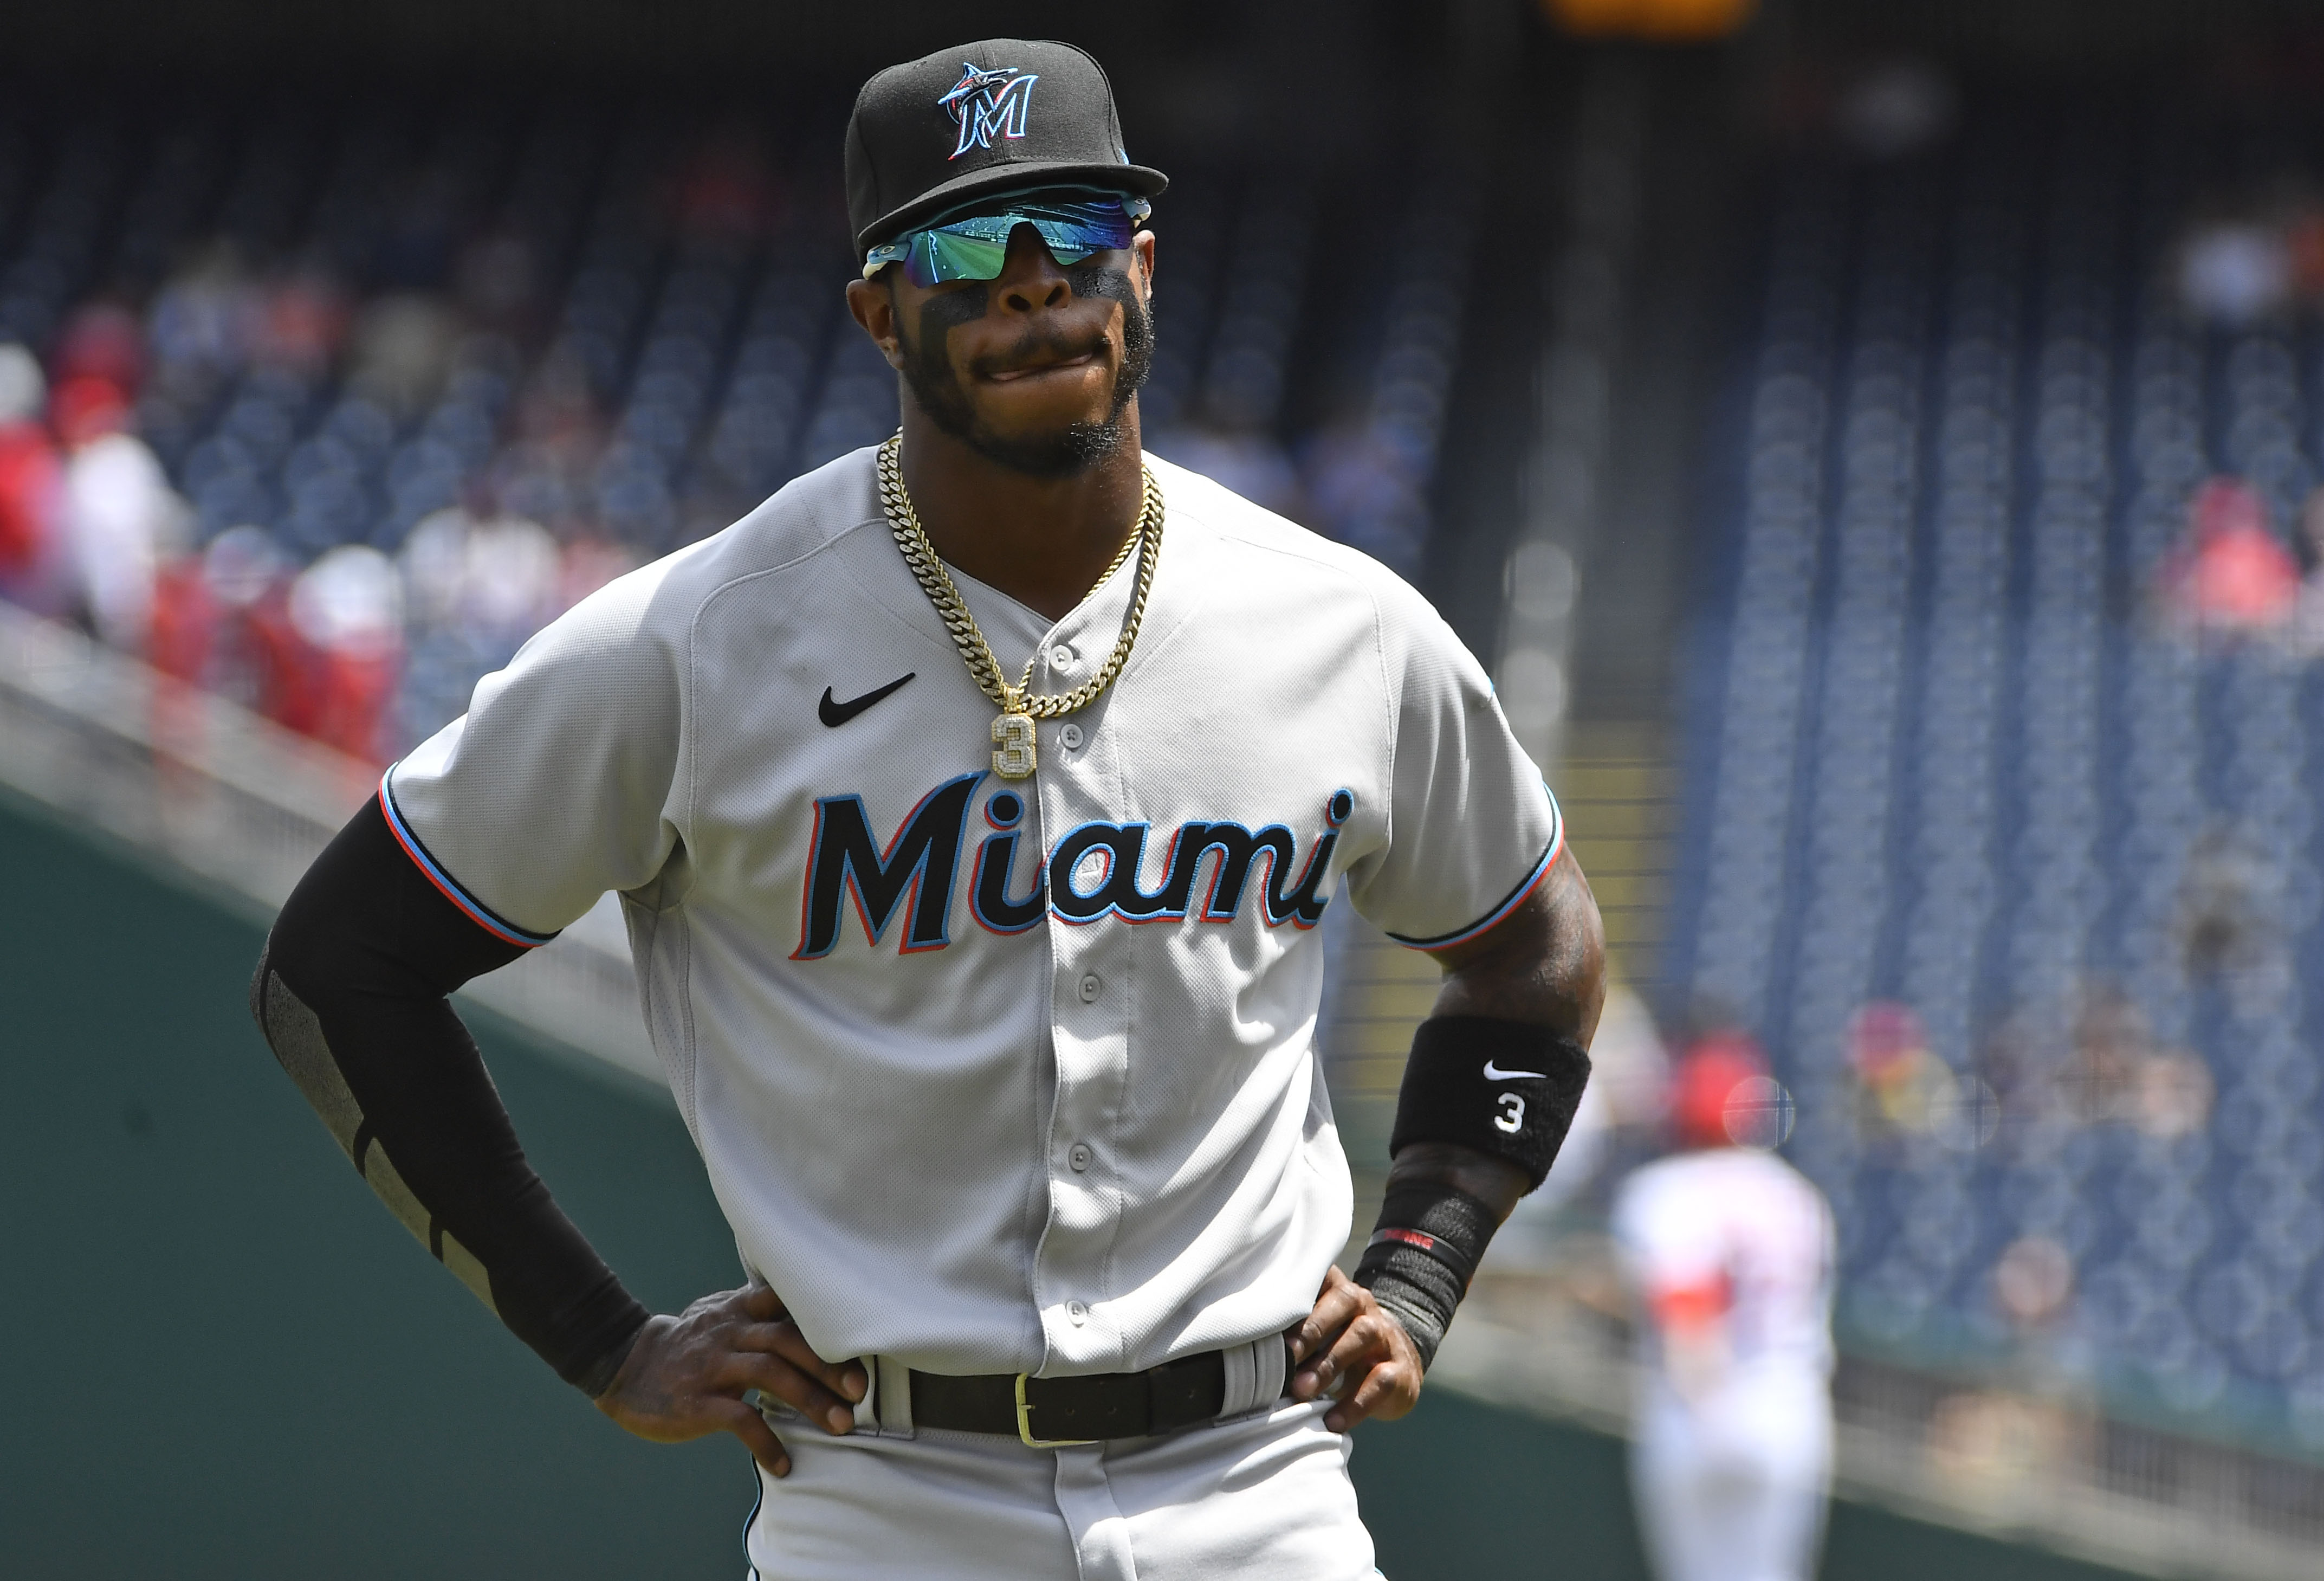 Miami Marlins center fielder Monte Harrison (3) on the field before the game against the Washington Nationals at Nationals Park